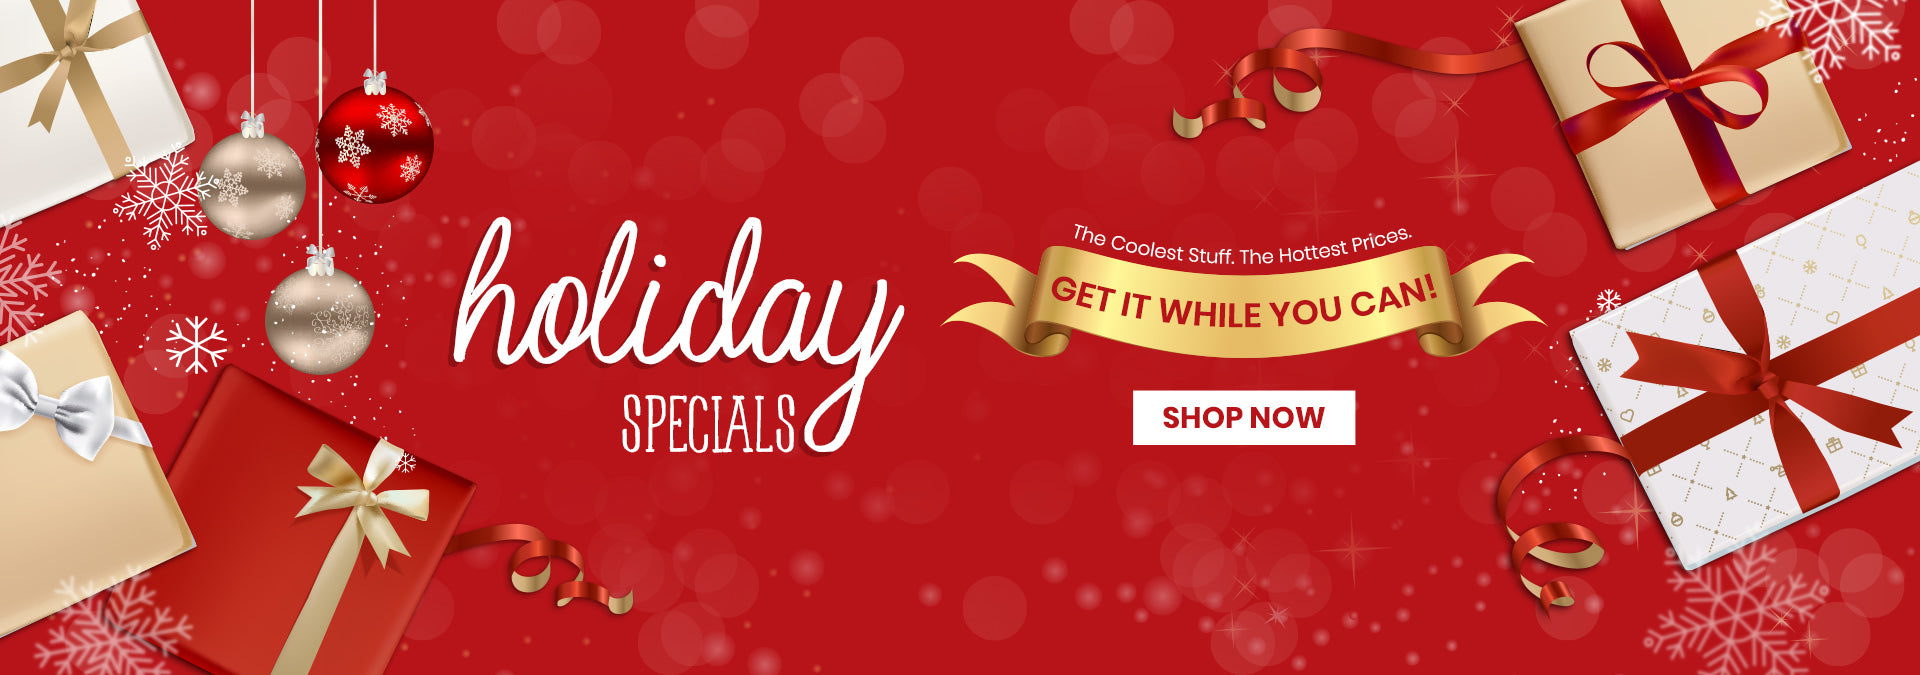 Skymall - Holiday Special Home Banner 1920x675 rev00-1